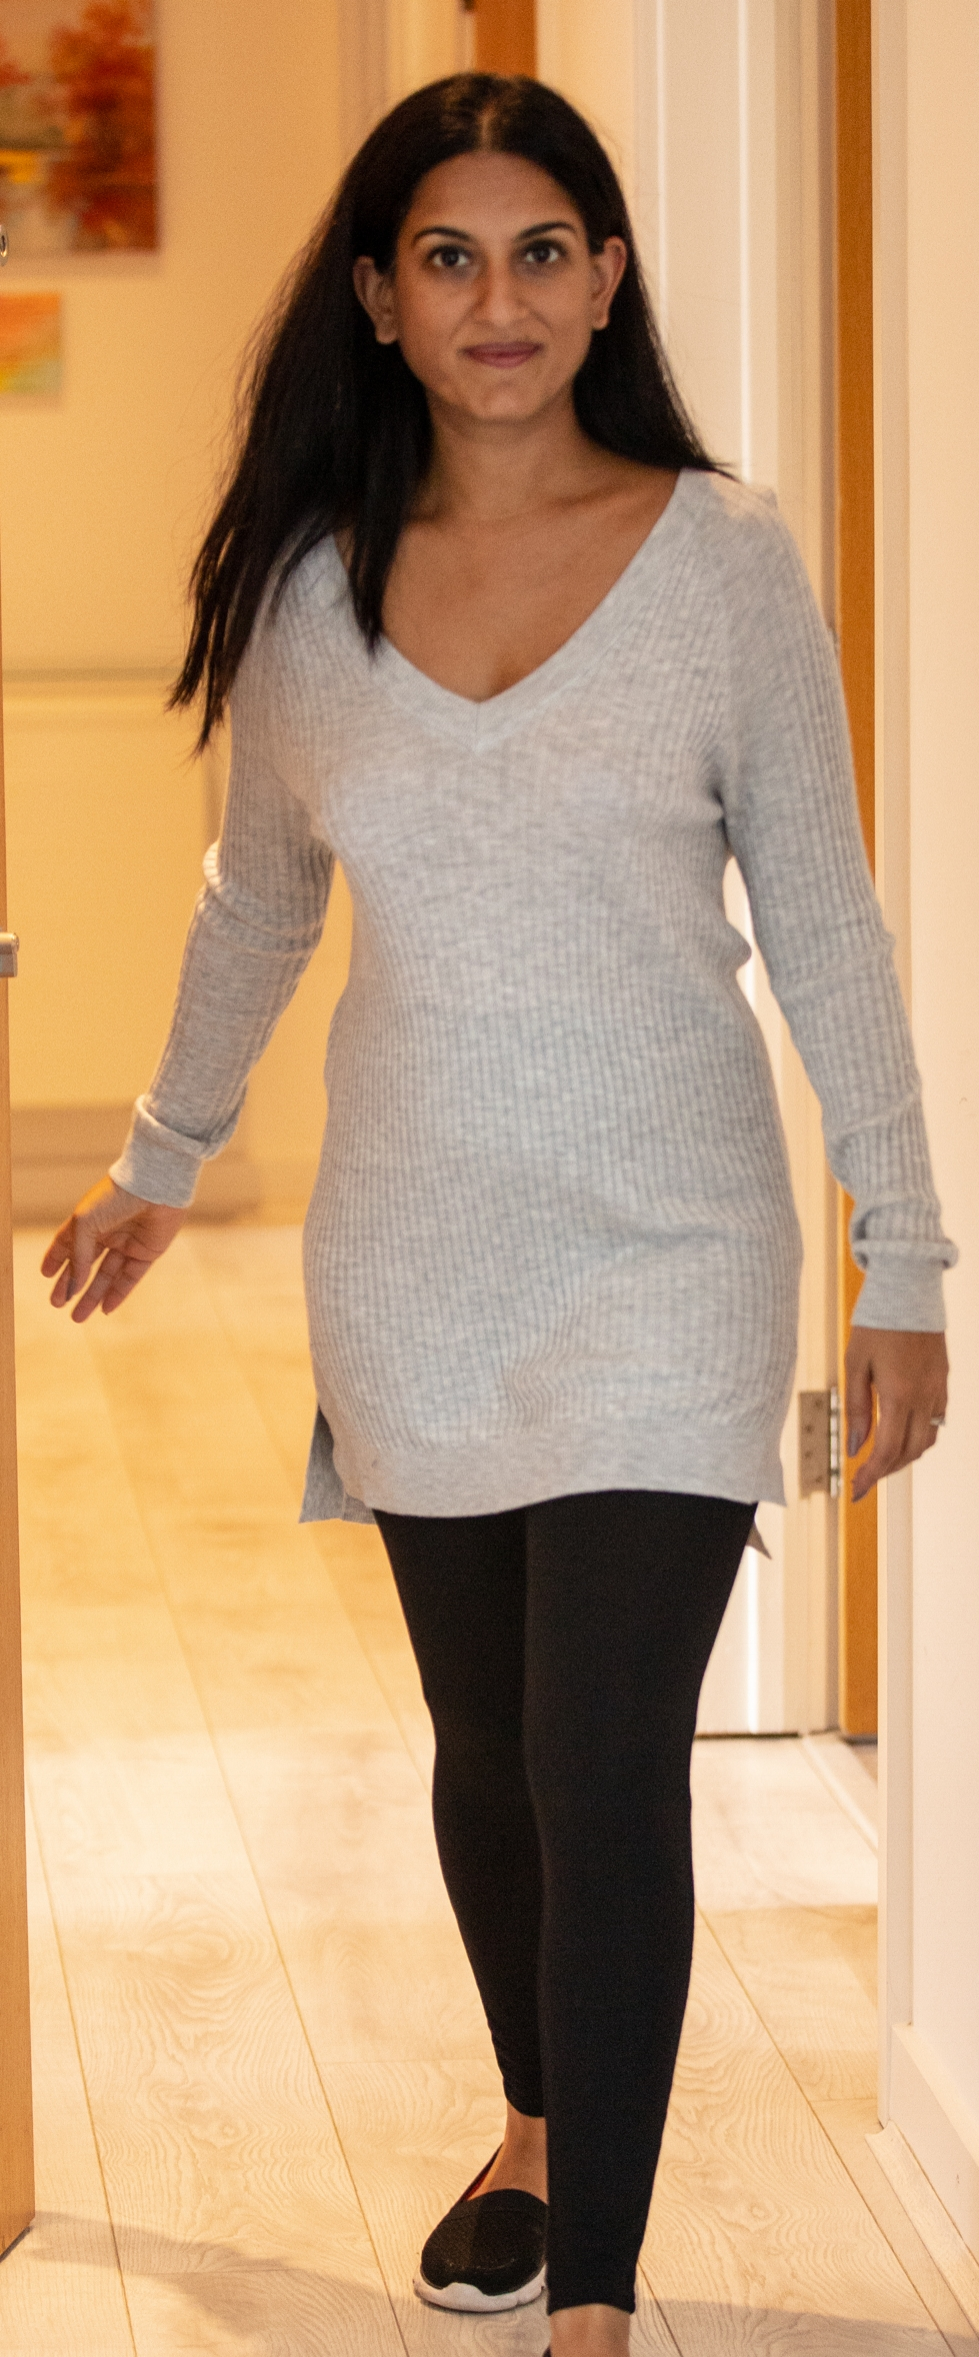 Long & snug - This top is from La Redoute. I love how snug I feel in it. This is mostly due to the the length of the top and sleeves. It's light, flowy and I feel free in it.